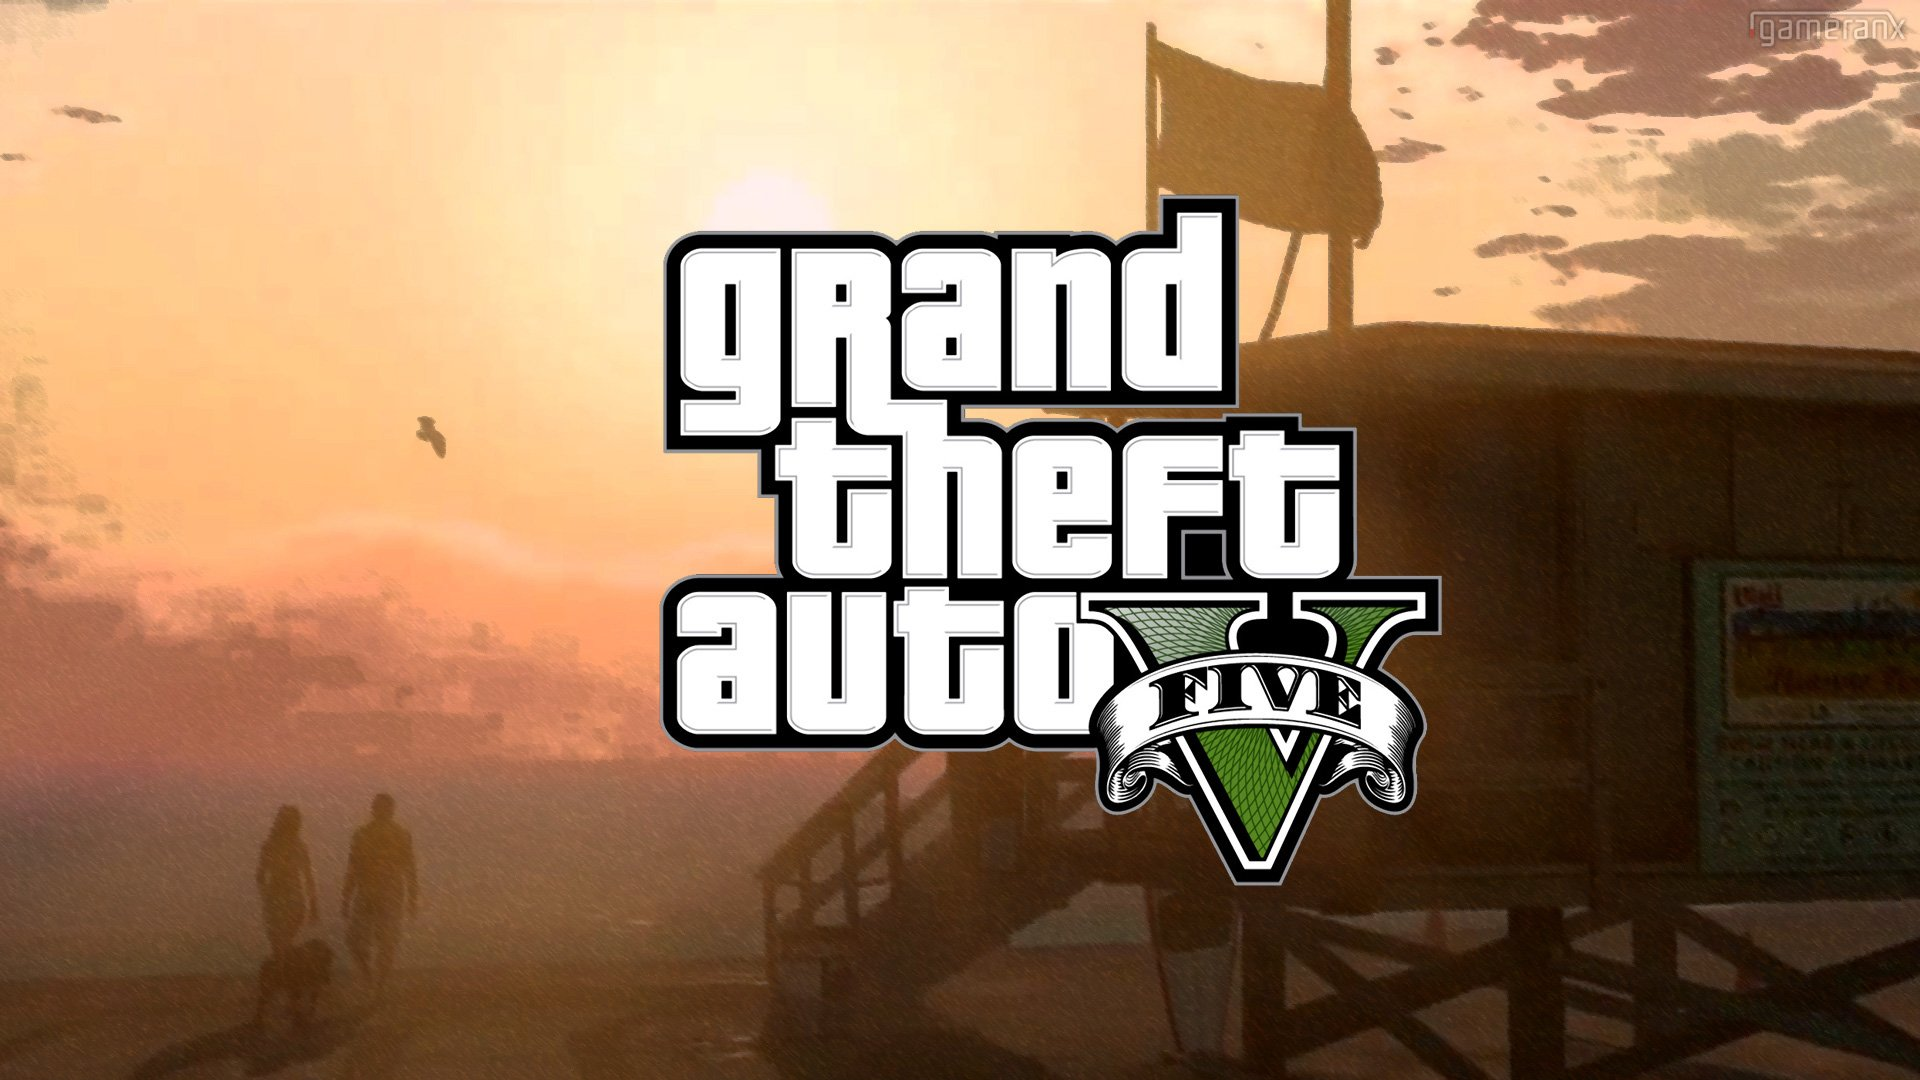 281 Grand Theft Auto V Hd Wallpapers Background Images Wallpaper